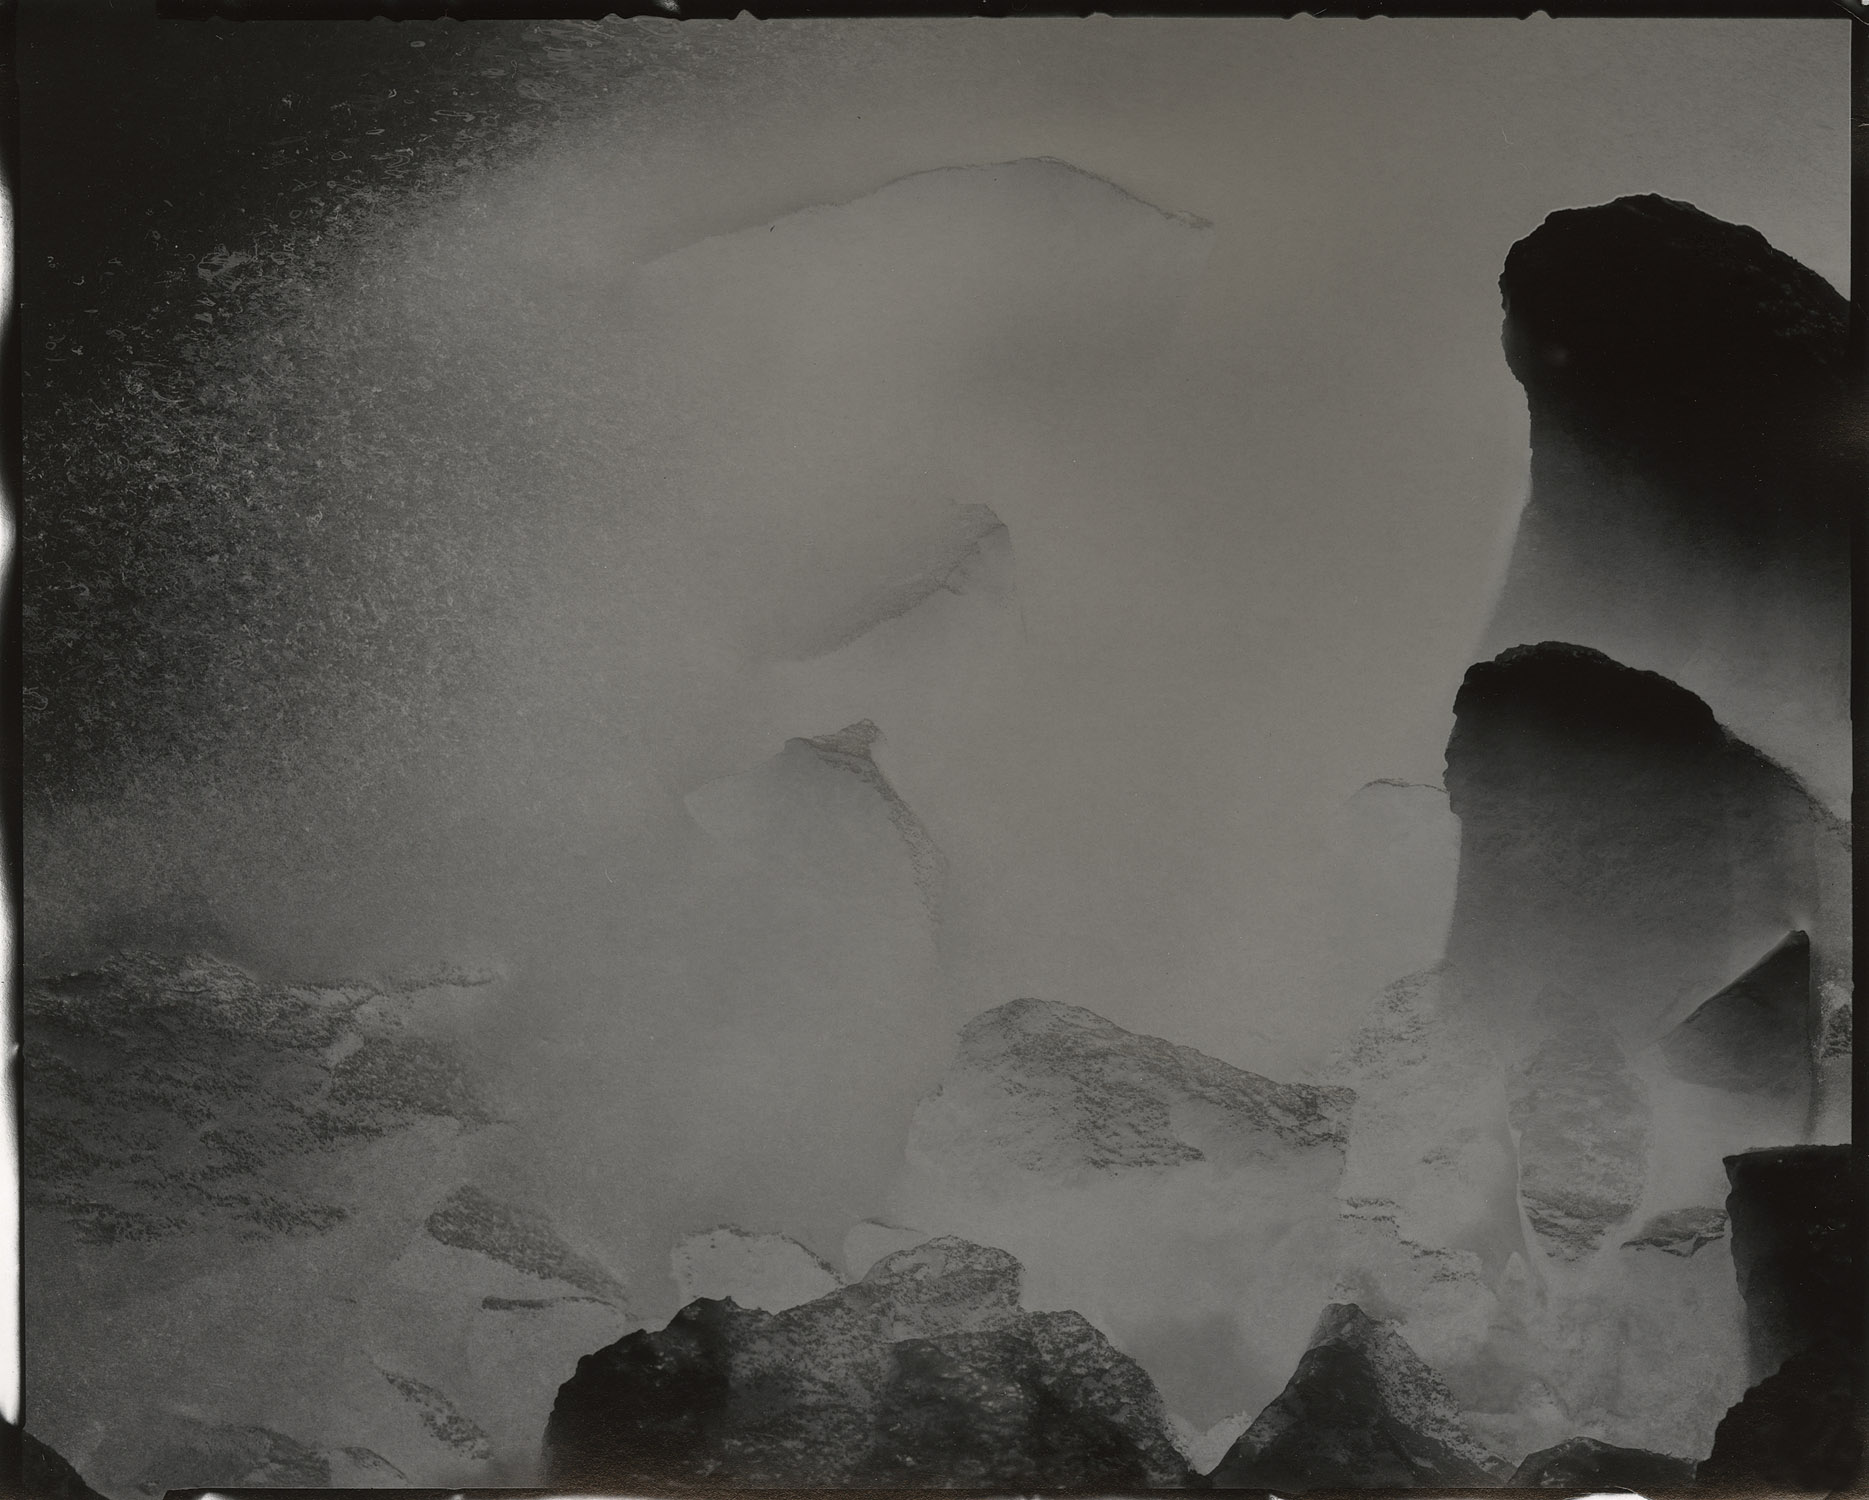 """Tidal #26, 2016. 8""""x10"""" unique gelatin silver paper negative. Courtesy of Haines Gallery, San Francisco"""